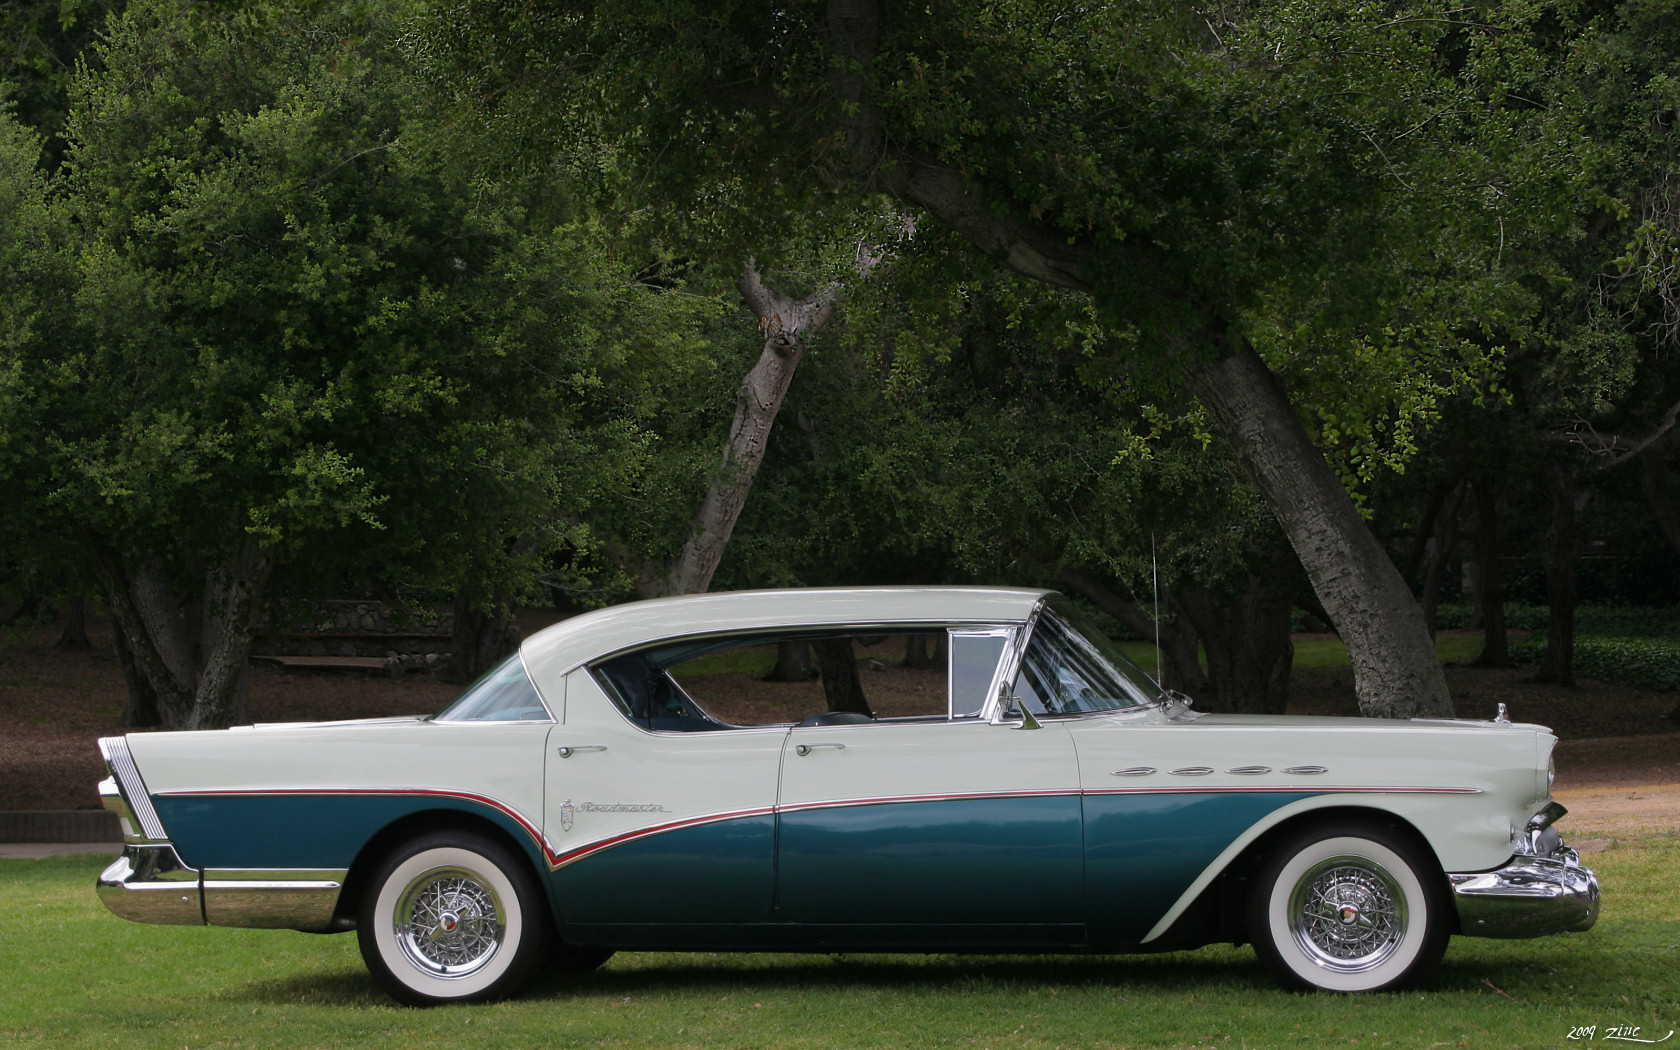 datei:1957 buick roadmaster 4d - tt green - svr2 – wikipedia